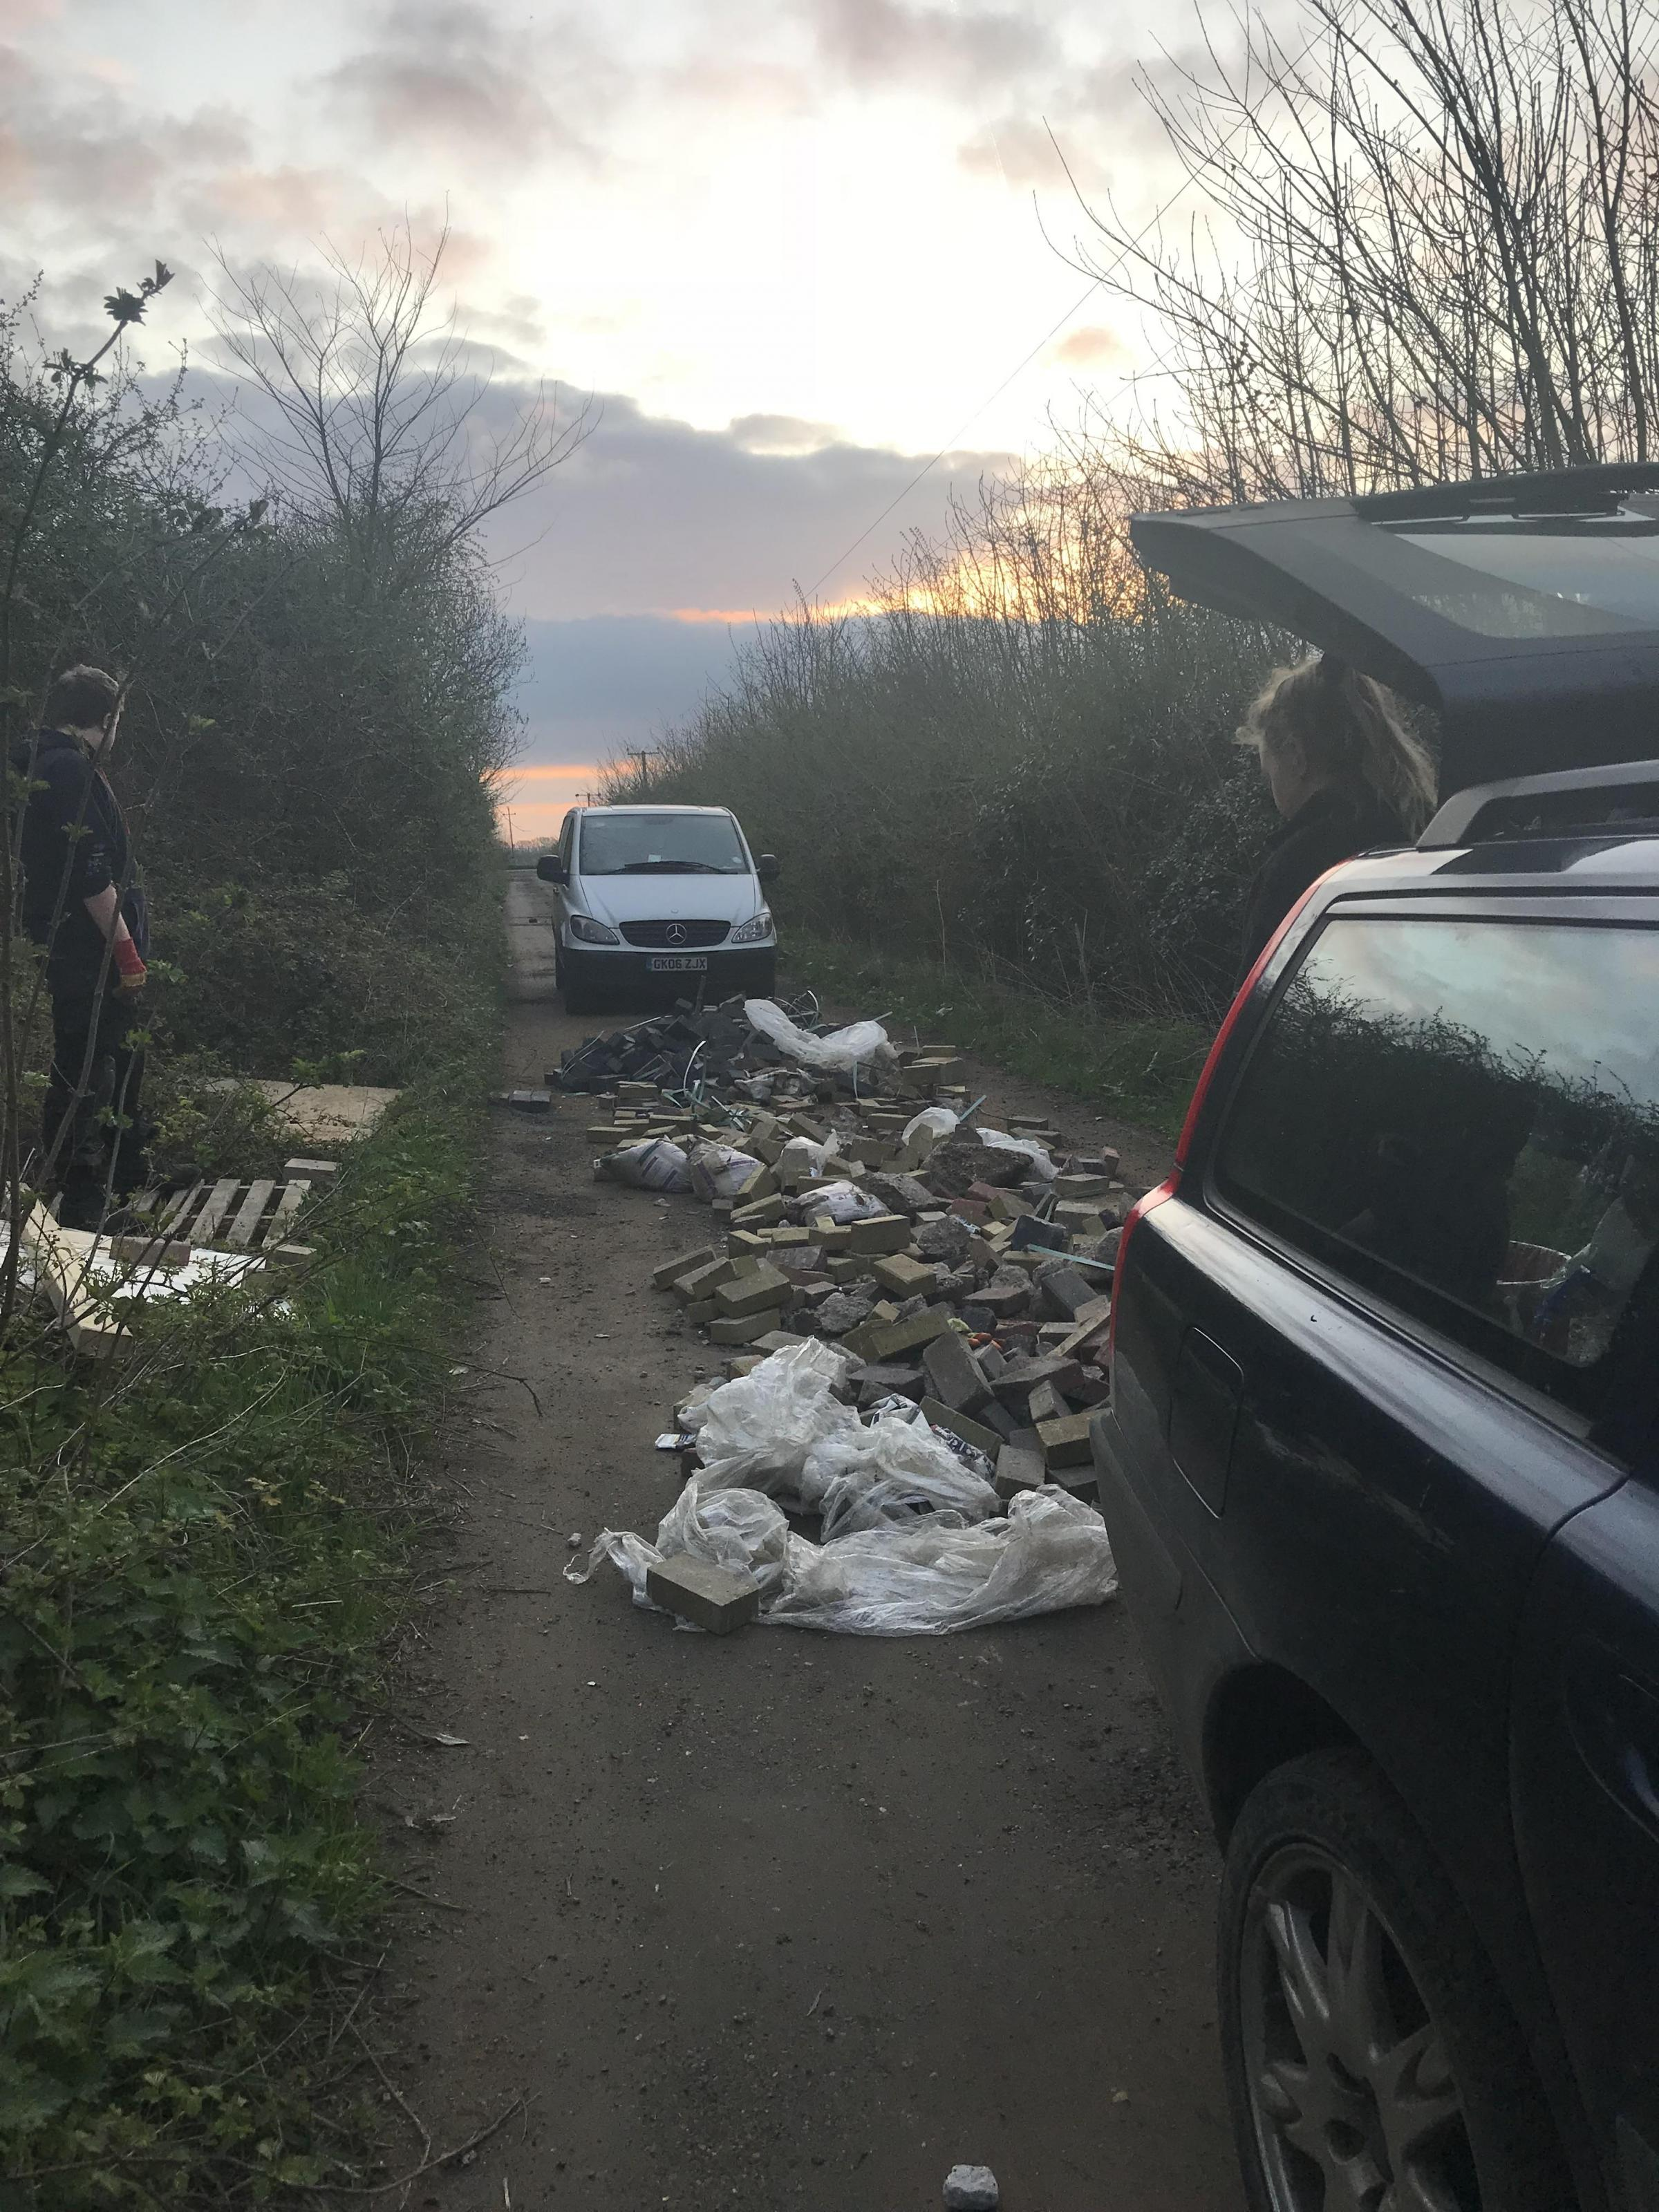 PICTURES: Fly tippers dump 'lorry load' of rubbish outside Oxfordshire home